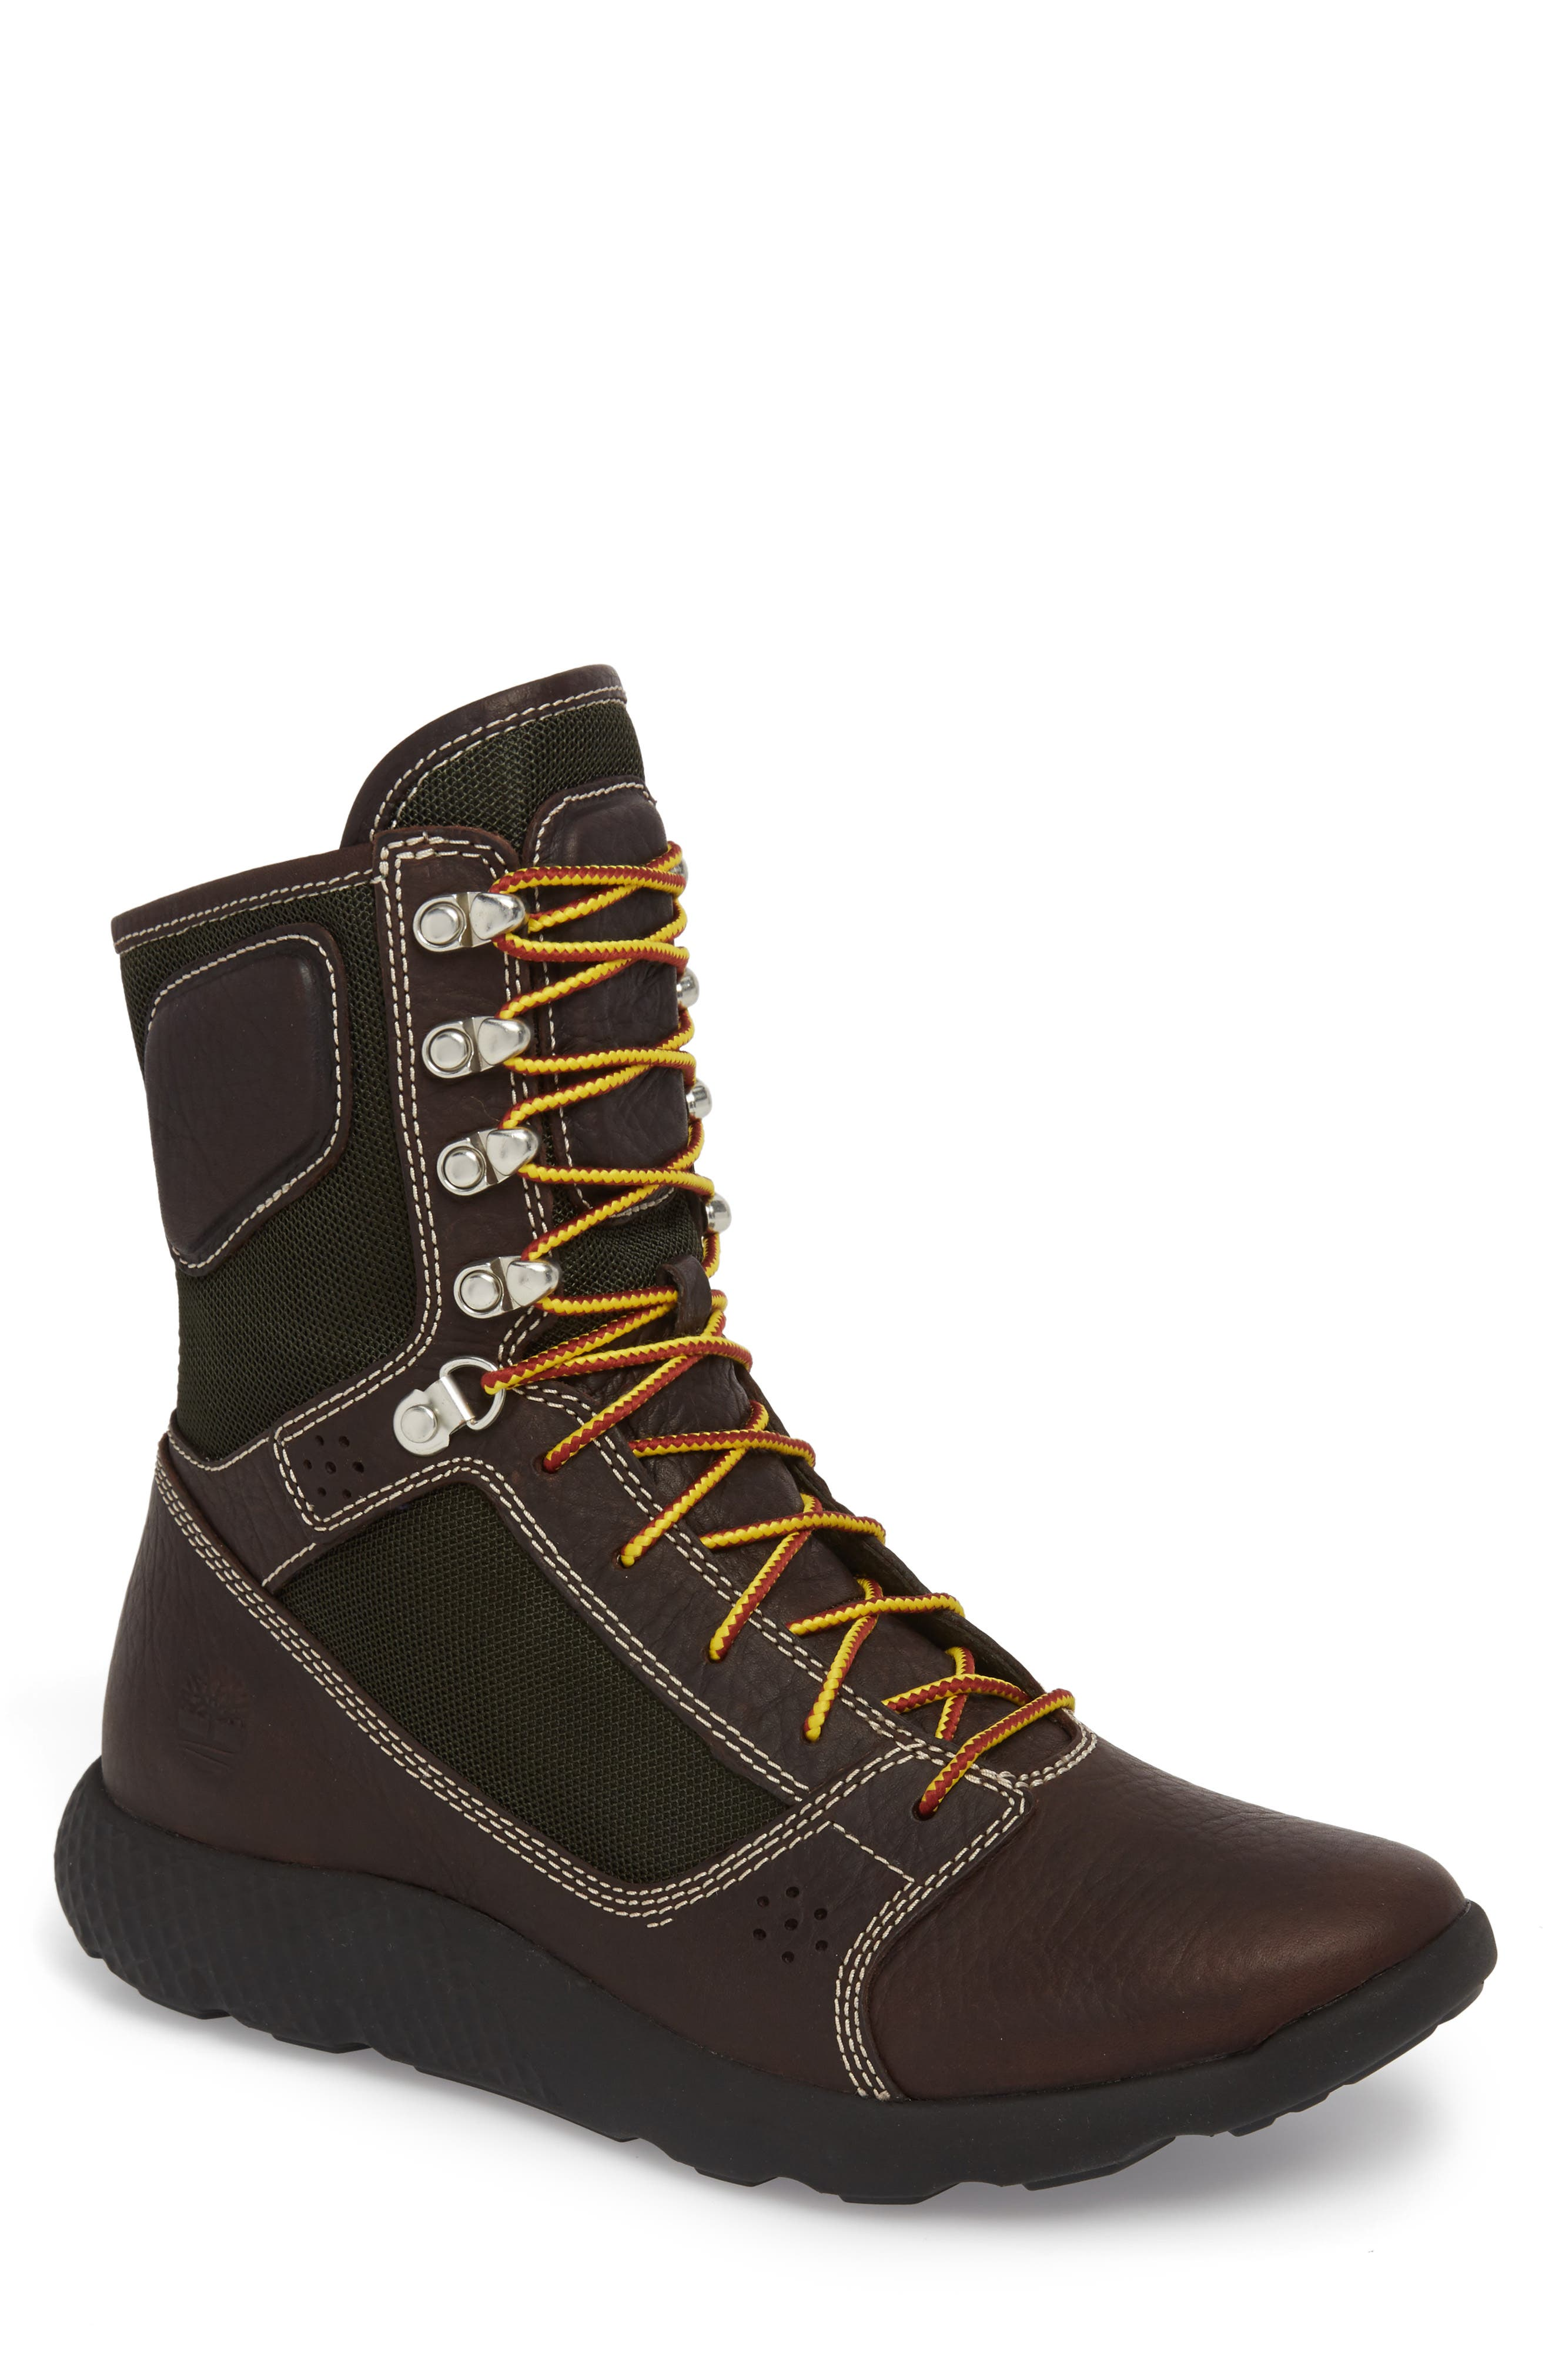 FlyRoam Tactical Boot,                             Main thumbnail 1, color,                             Hazel Brown/ Black Leather